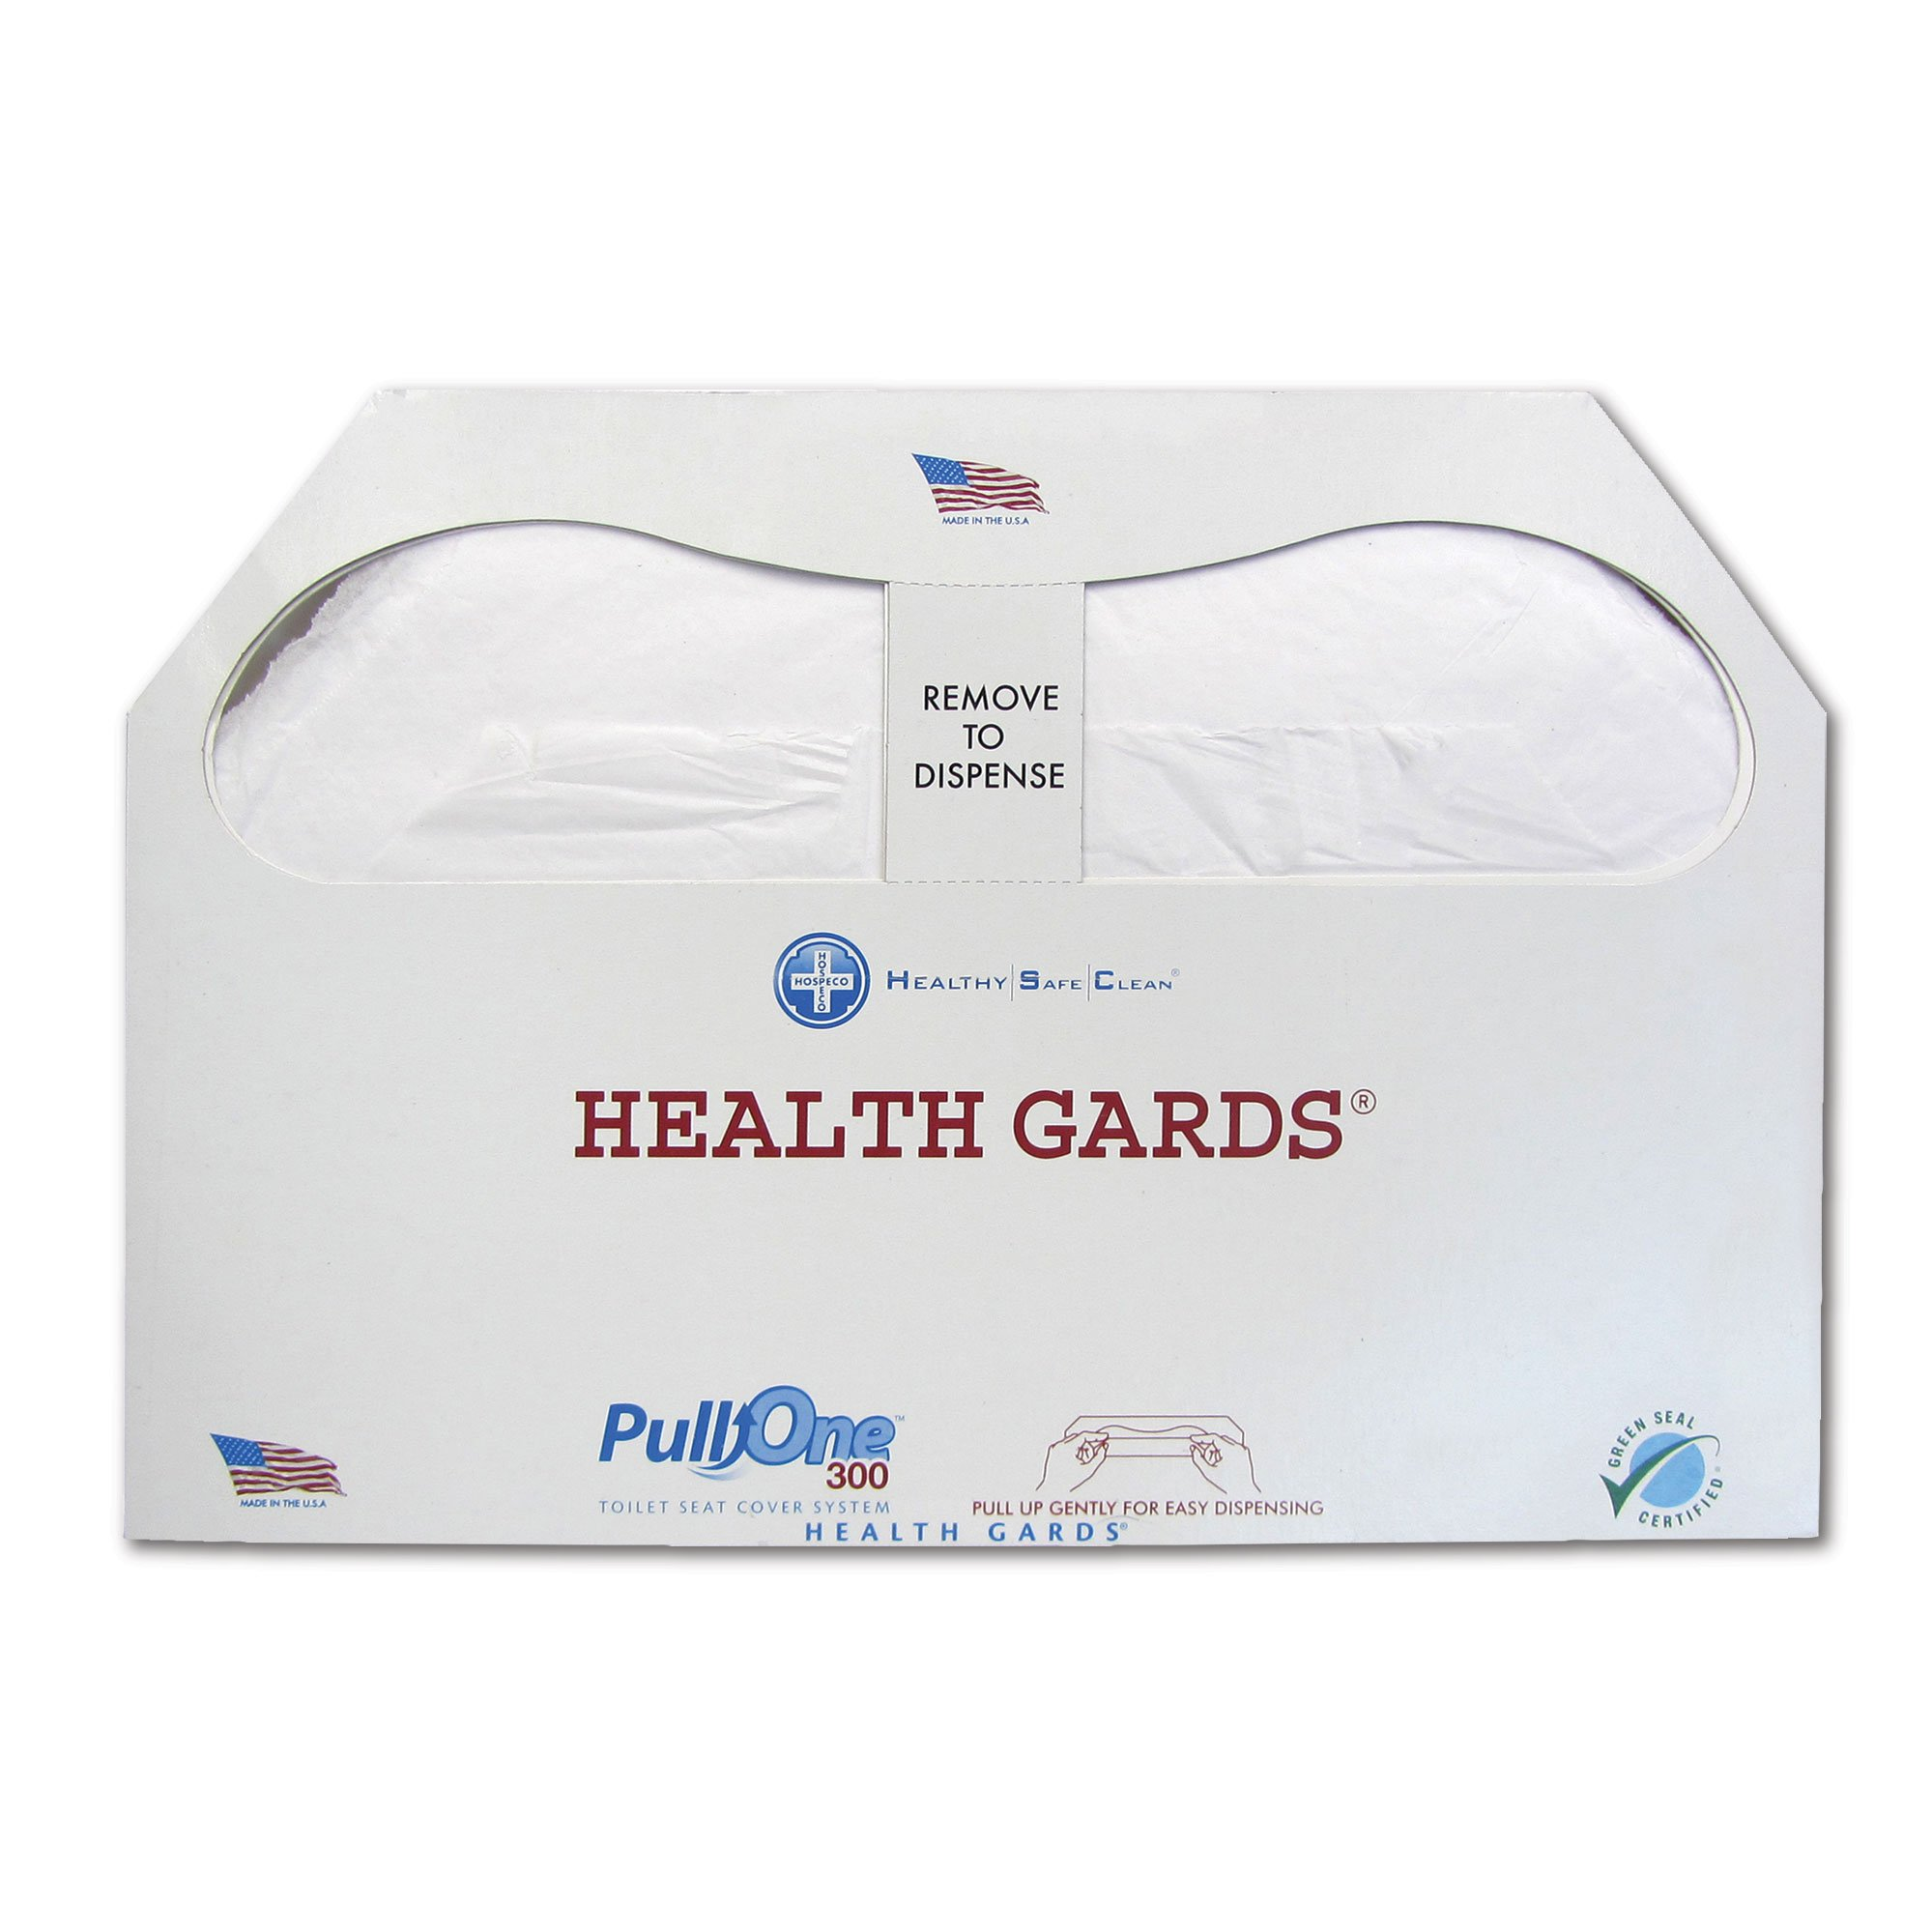 Health Gards PullOne Toliet Seat Covers